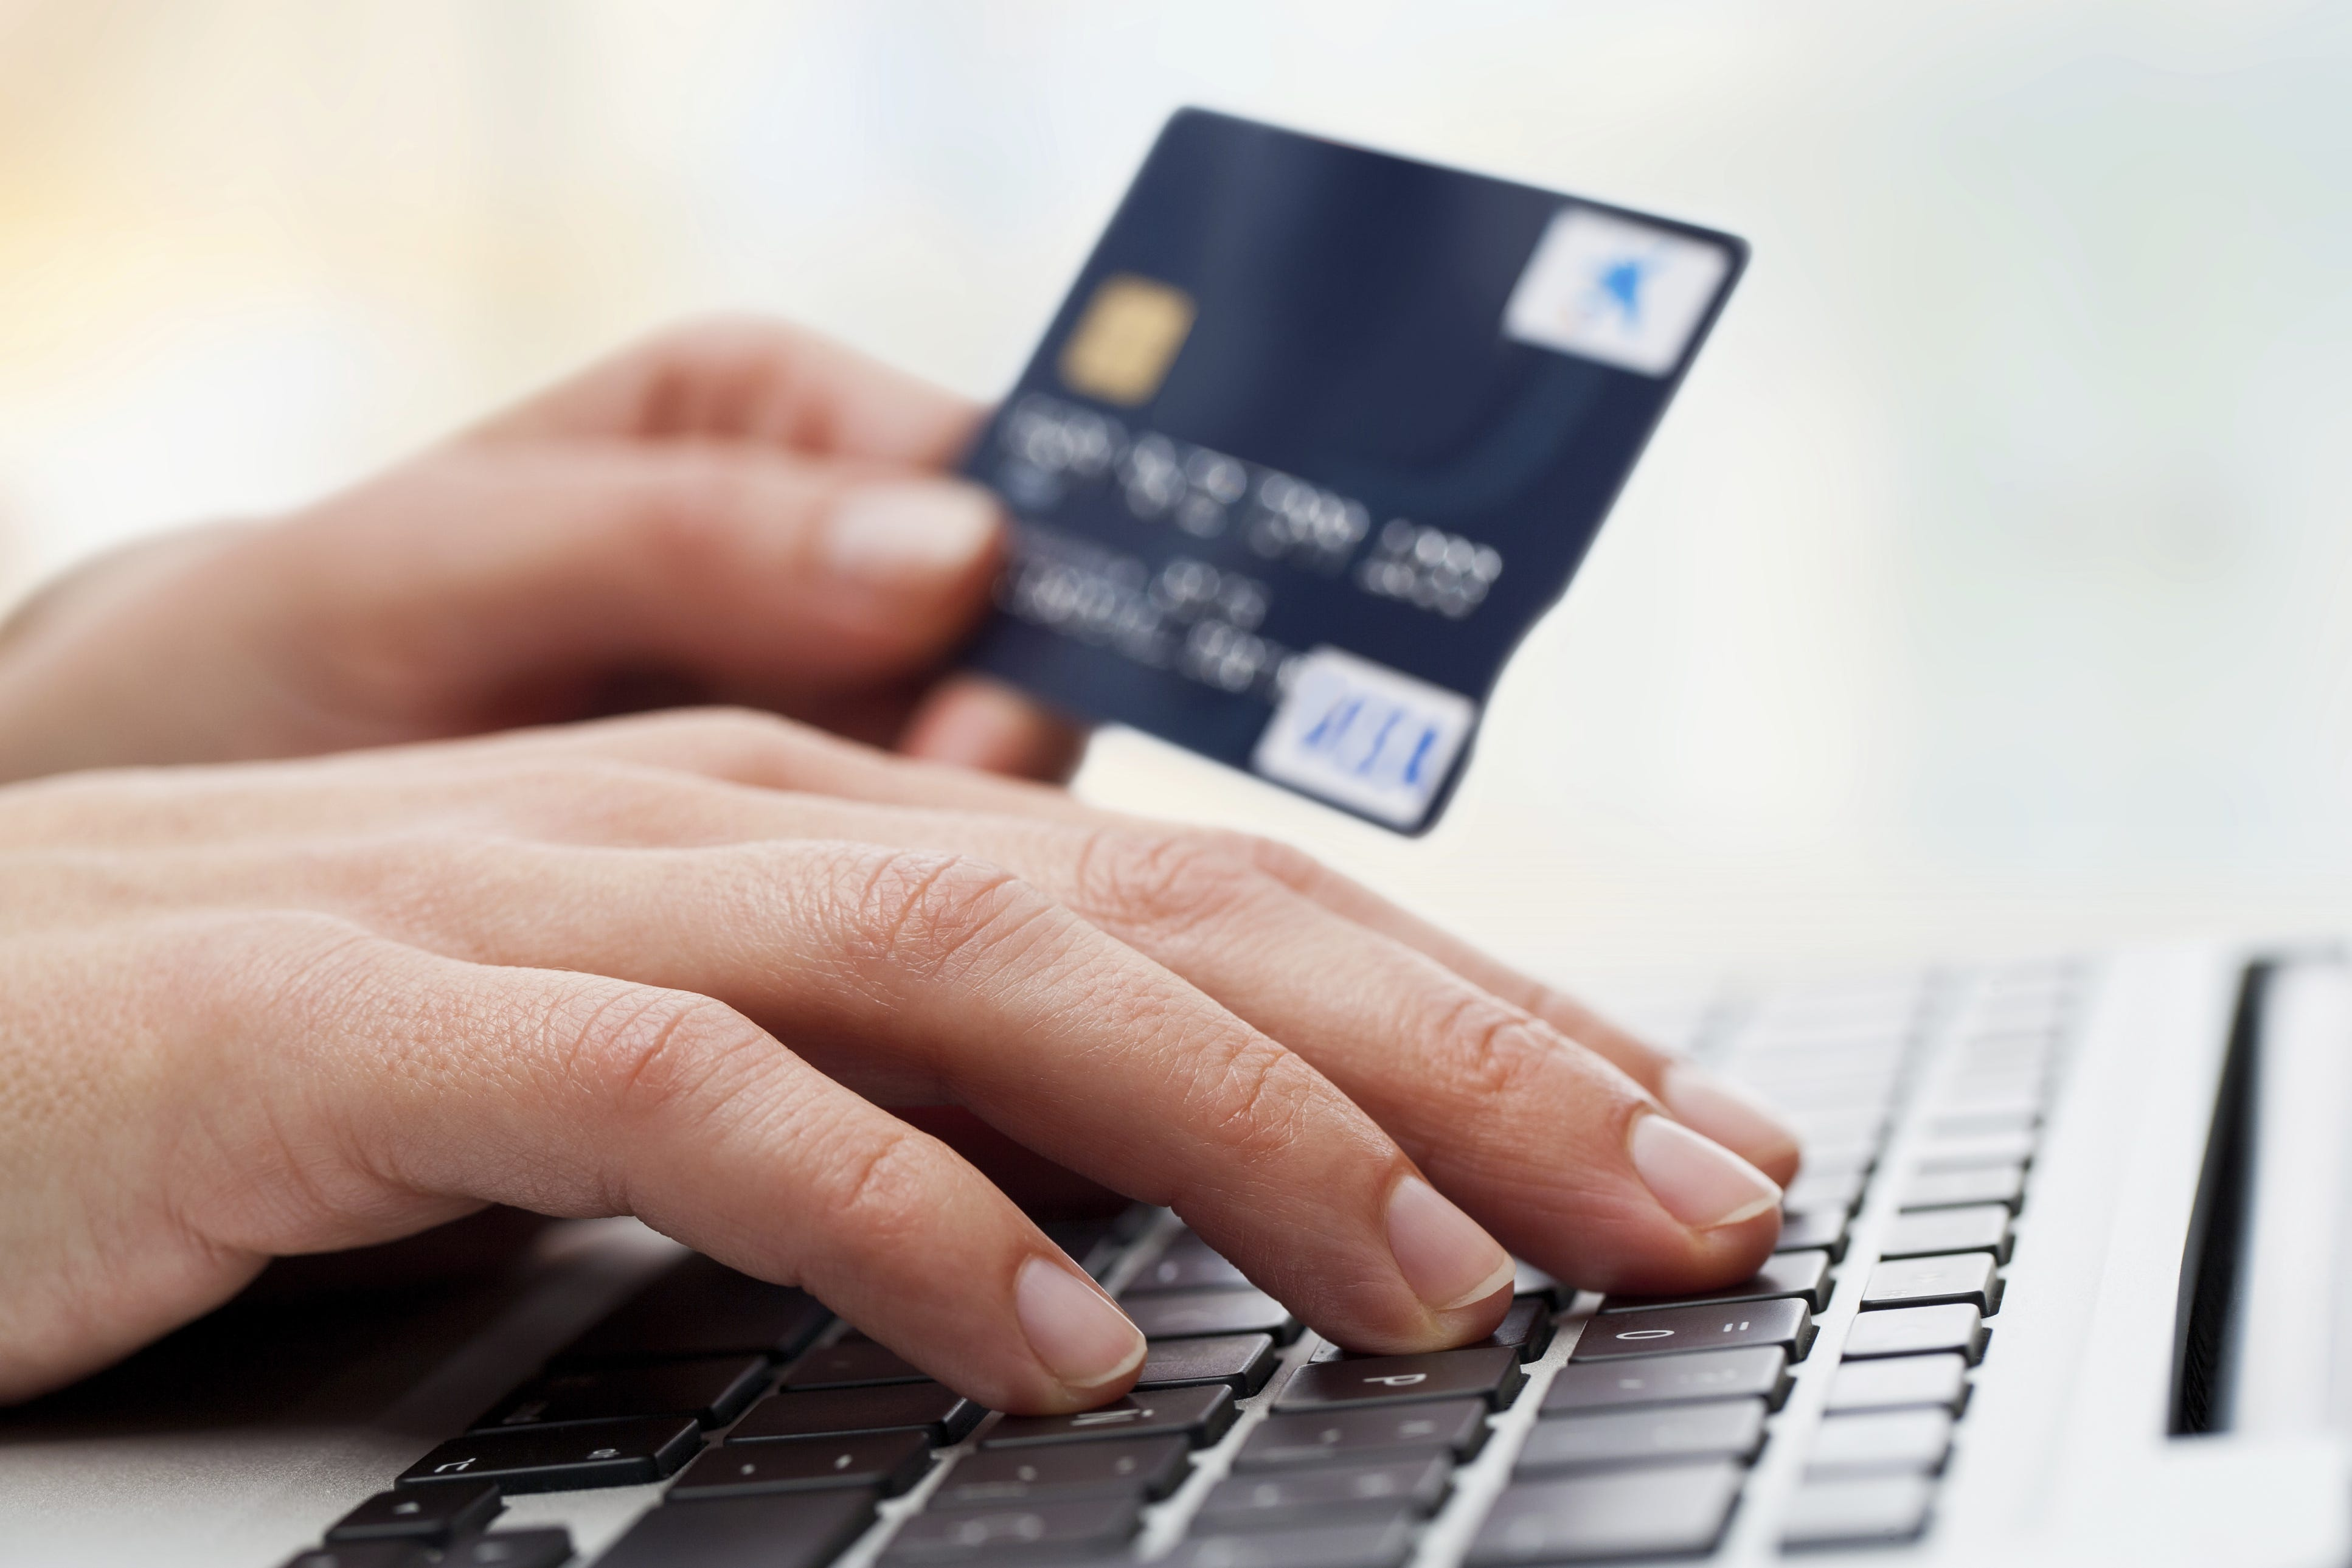 Advise a good debit card with interest accrual on the balance of own funds